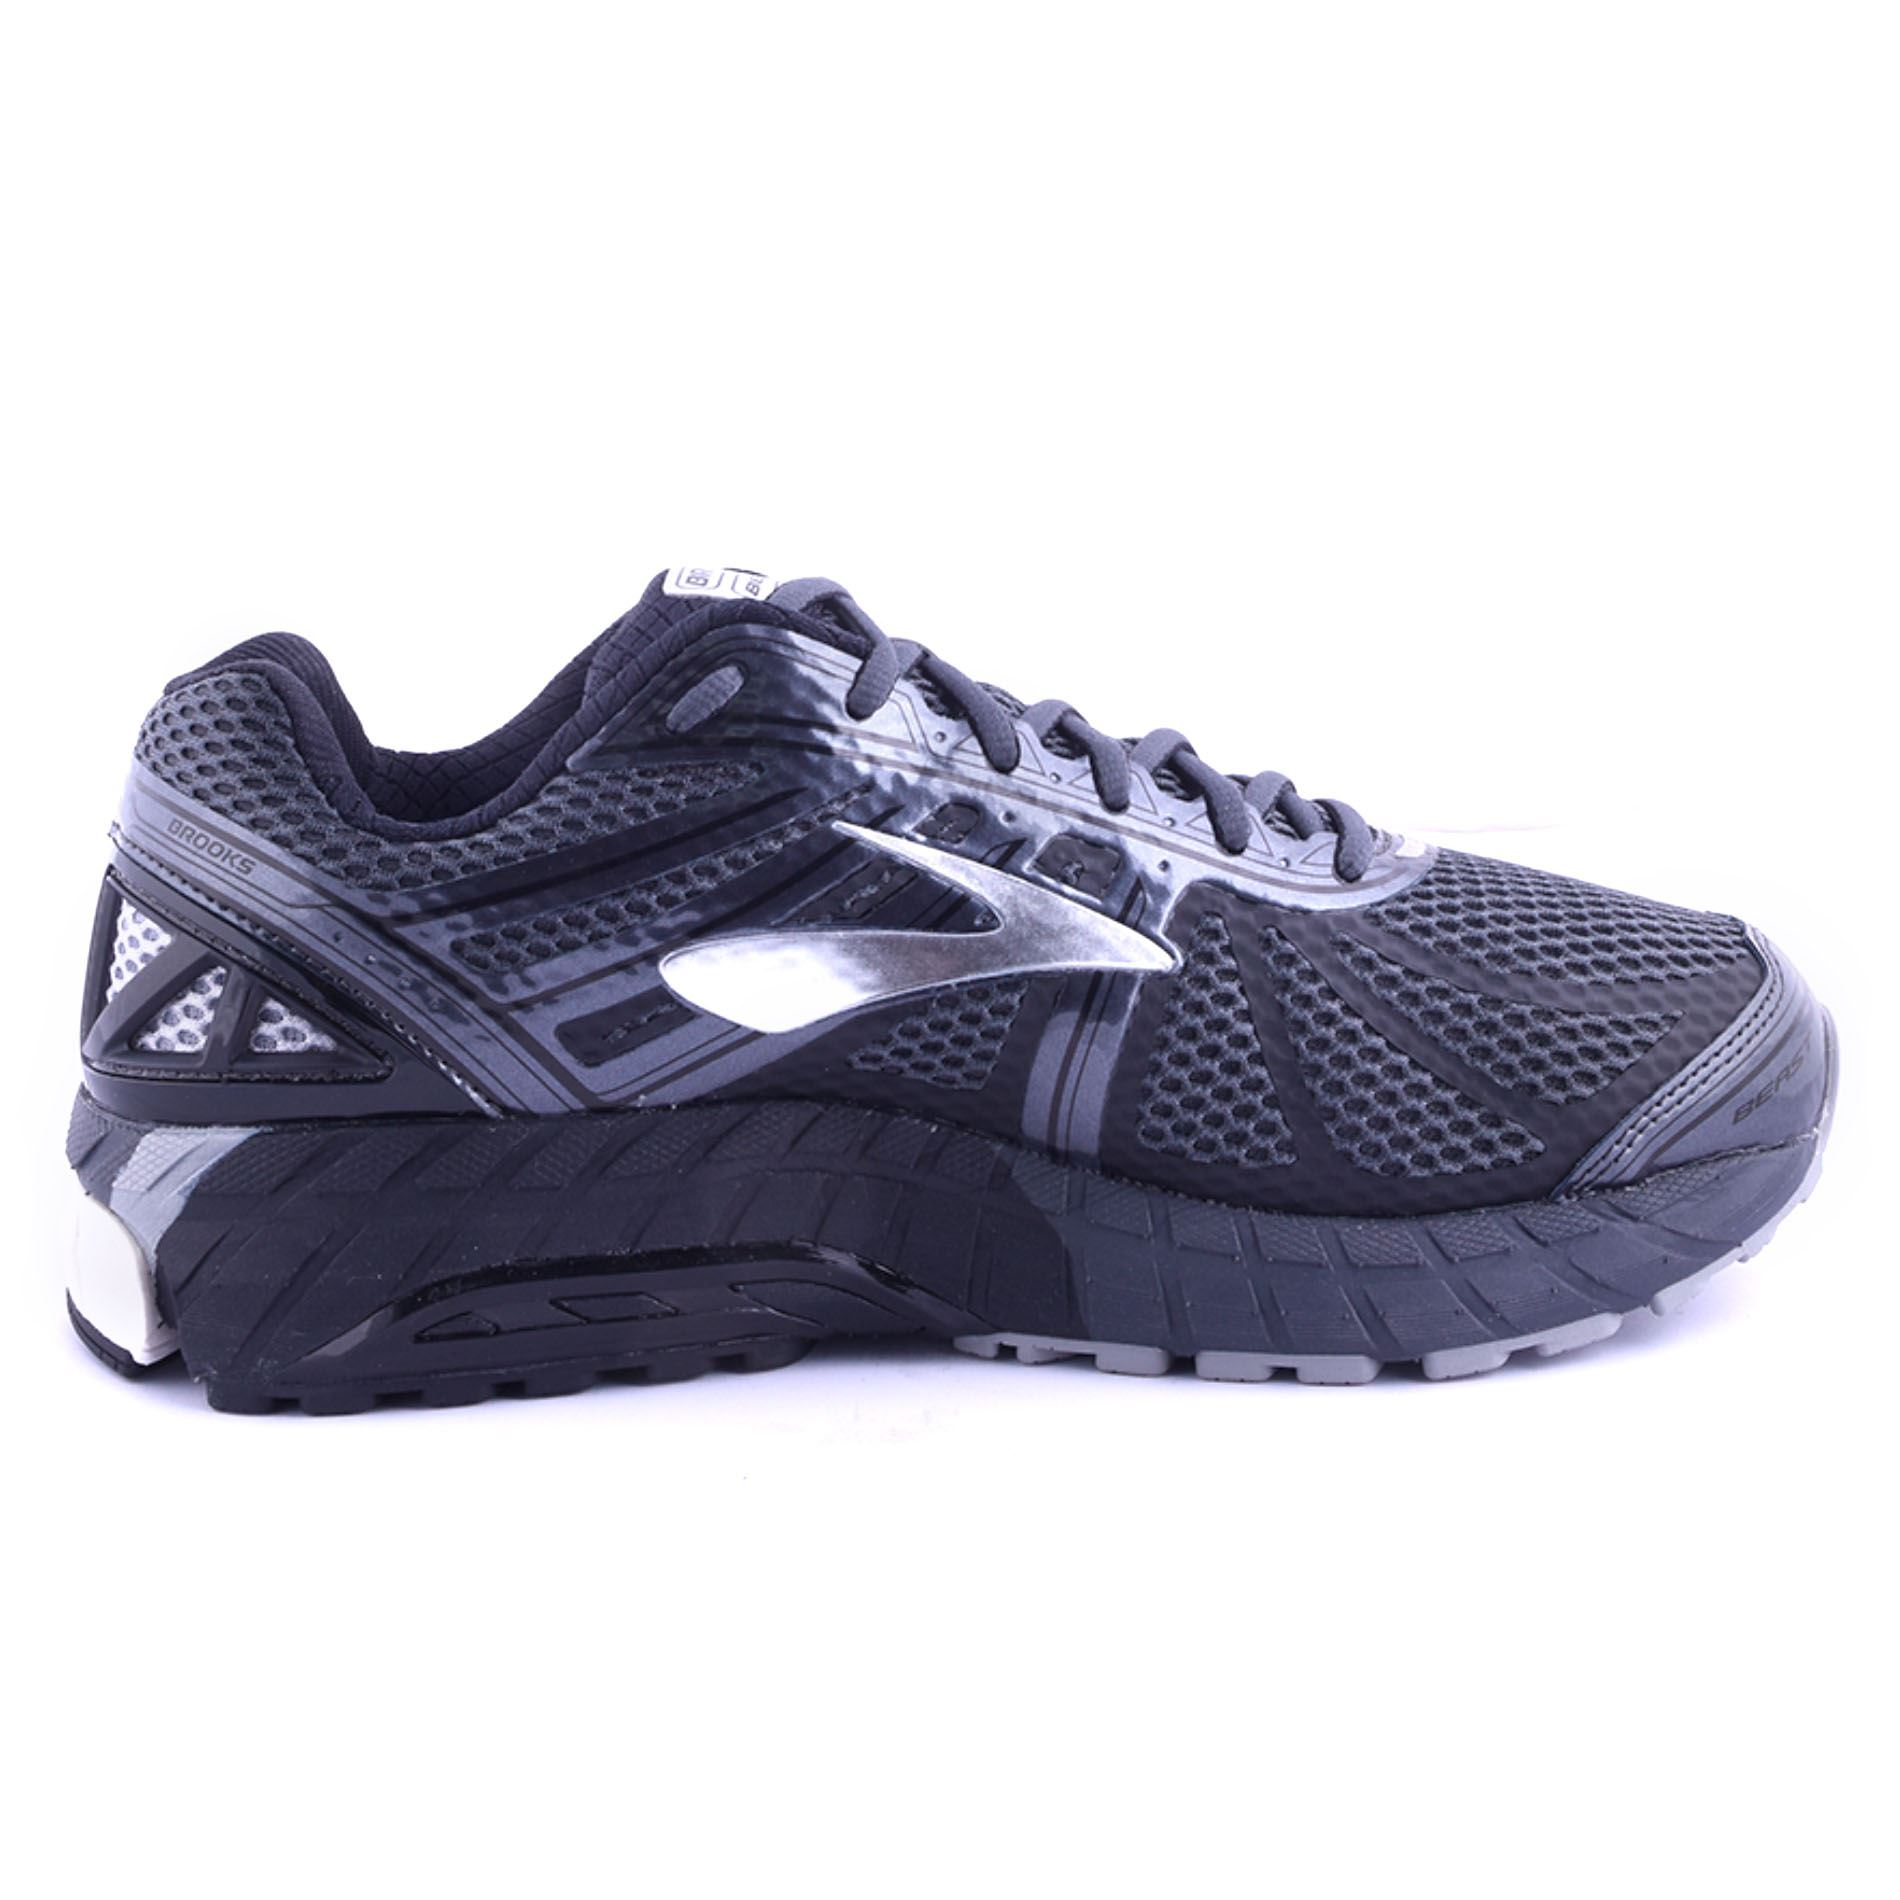 Shop the largest selection of Men's Water Shoes at the web's most popular swim shop. Free Shipping on $49+. Low Price Guarantee. + Brands. 24/7 Customer Service.